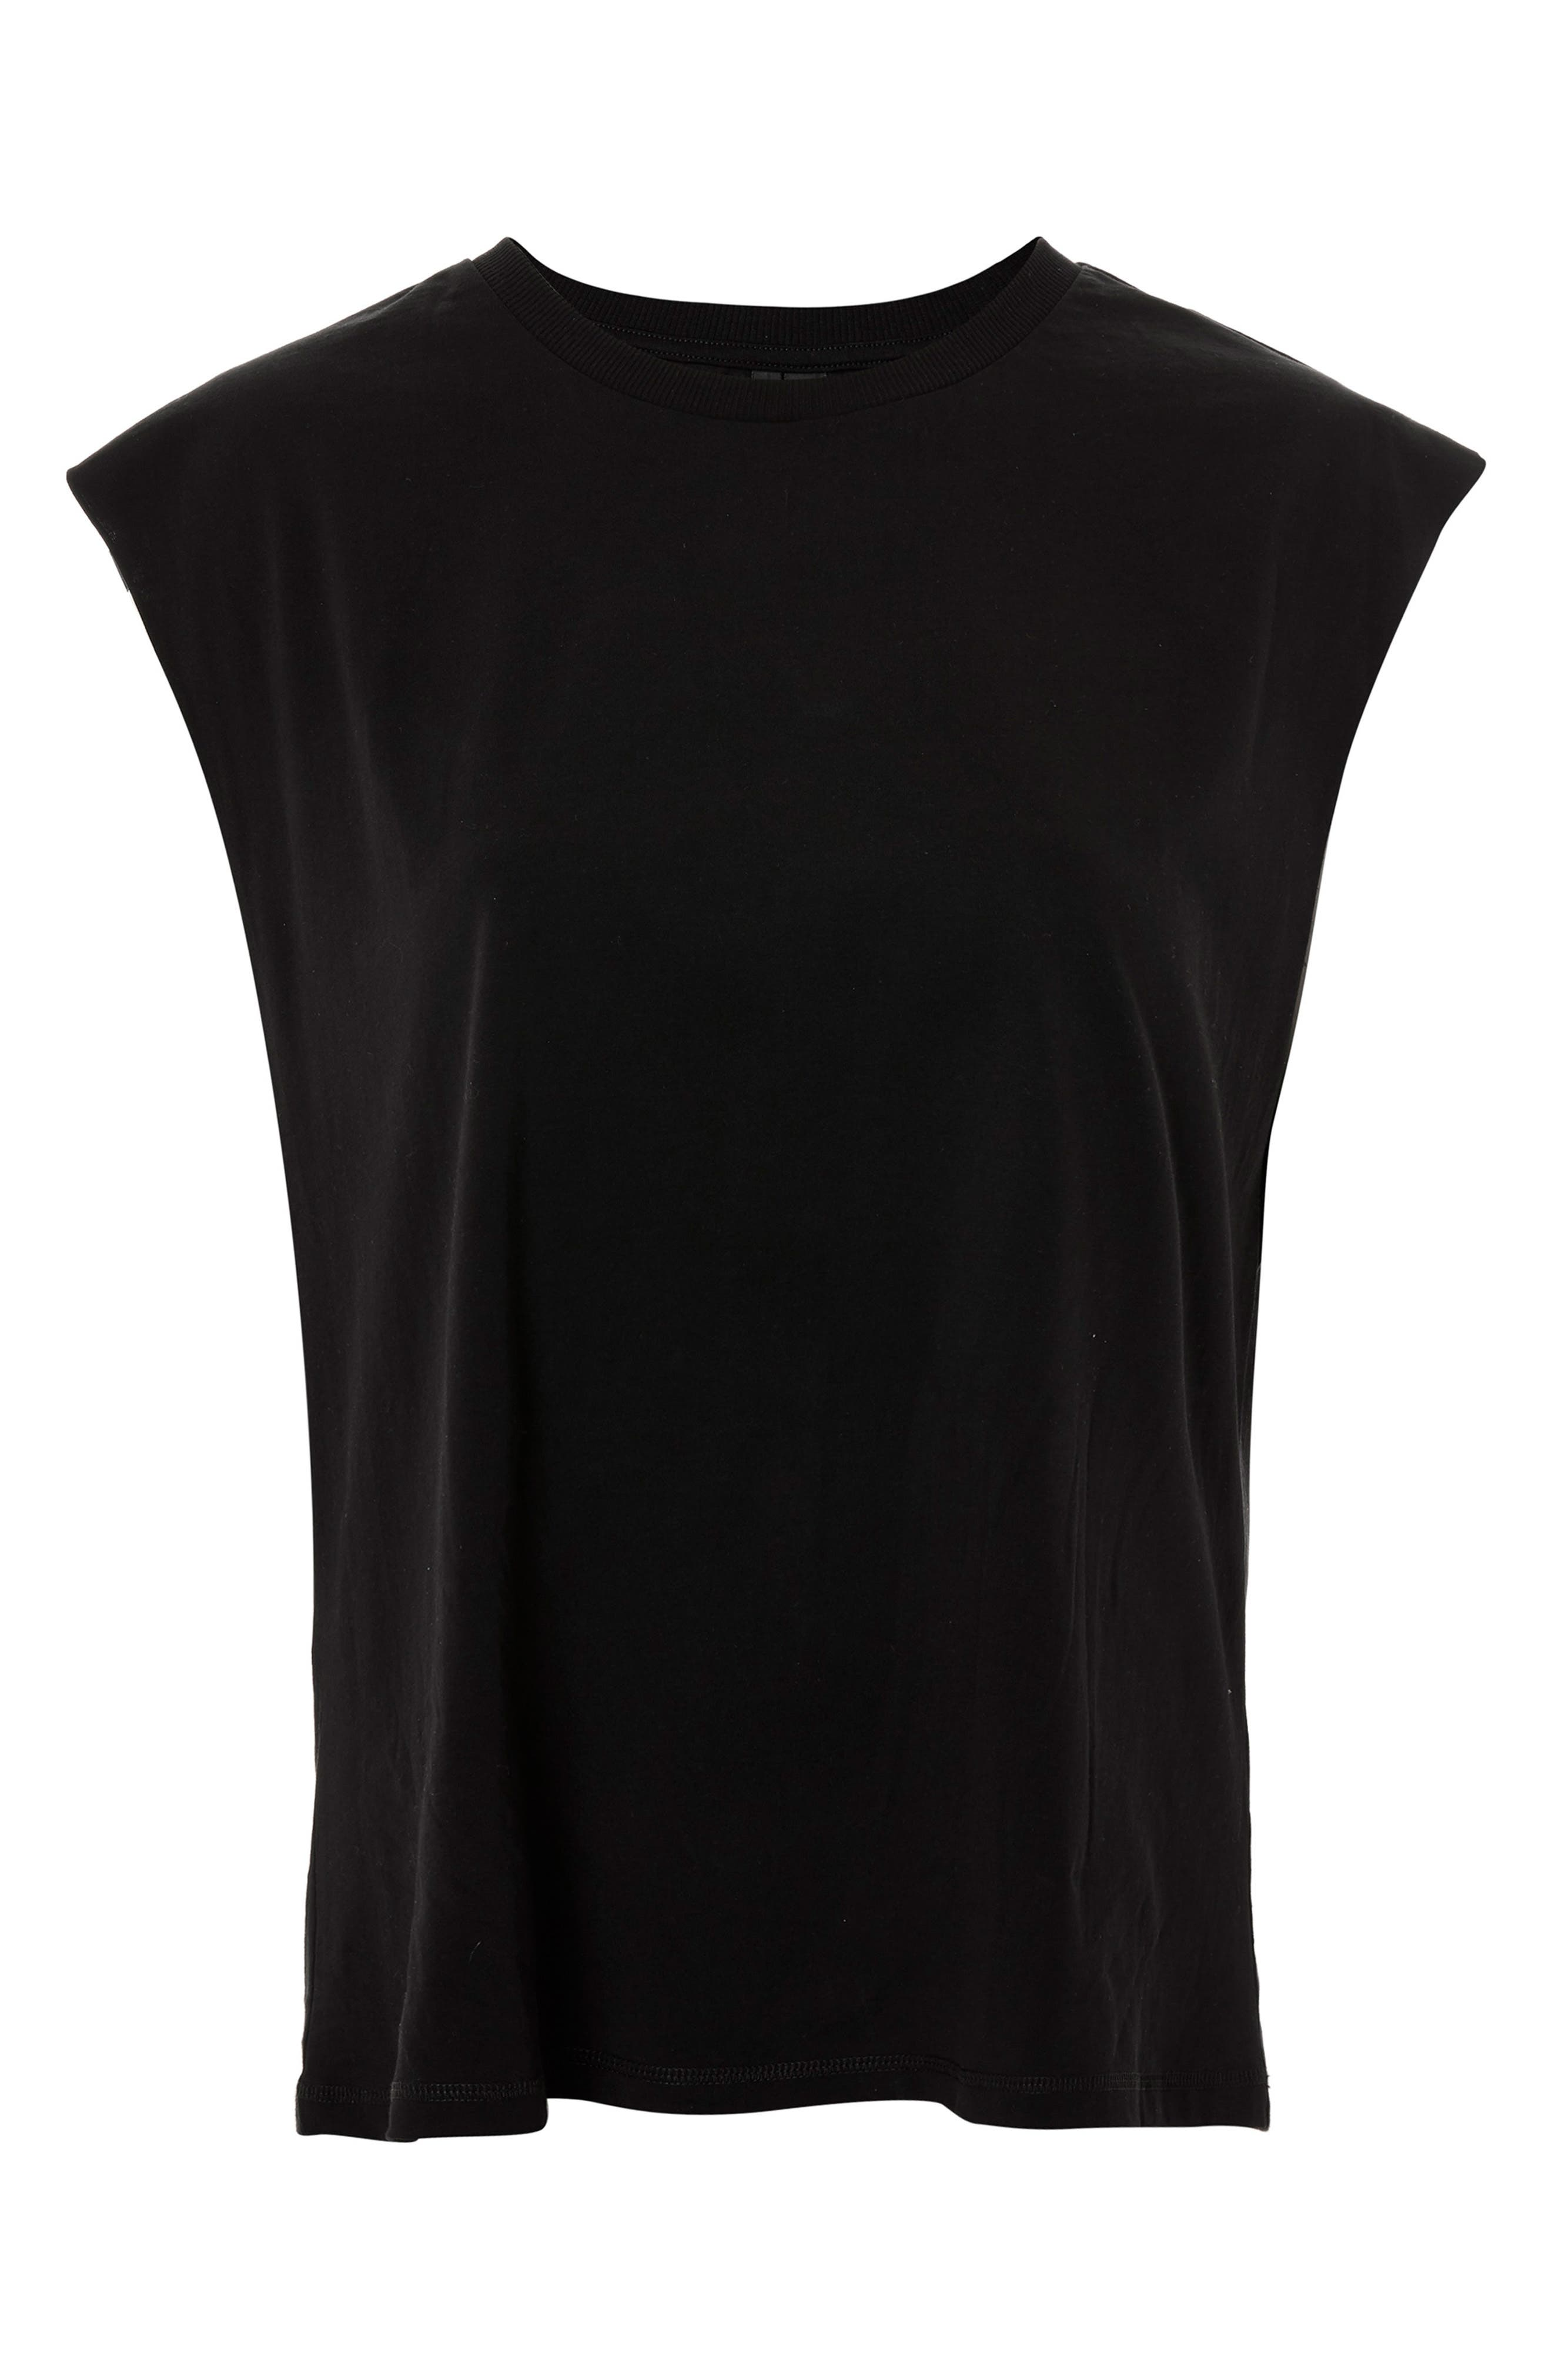 Raw Sleeve Top,                             Main thumbnail 1, color,                             Black